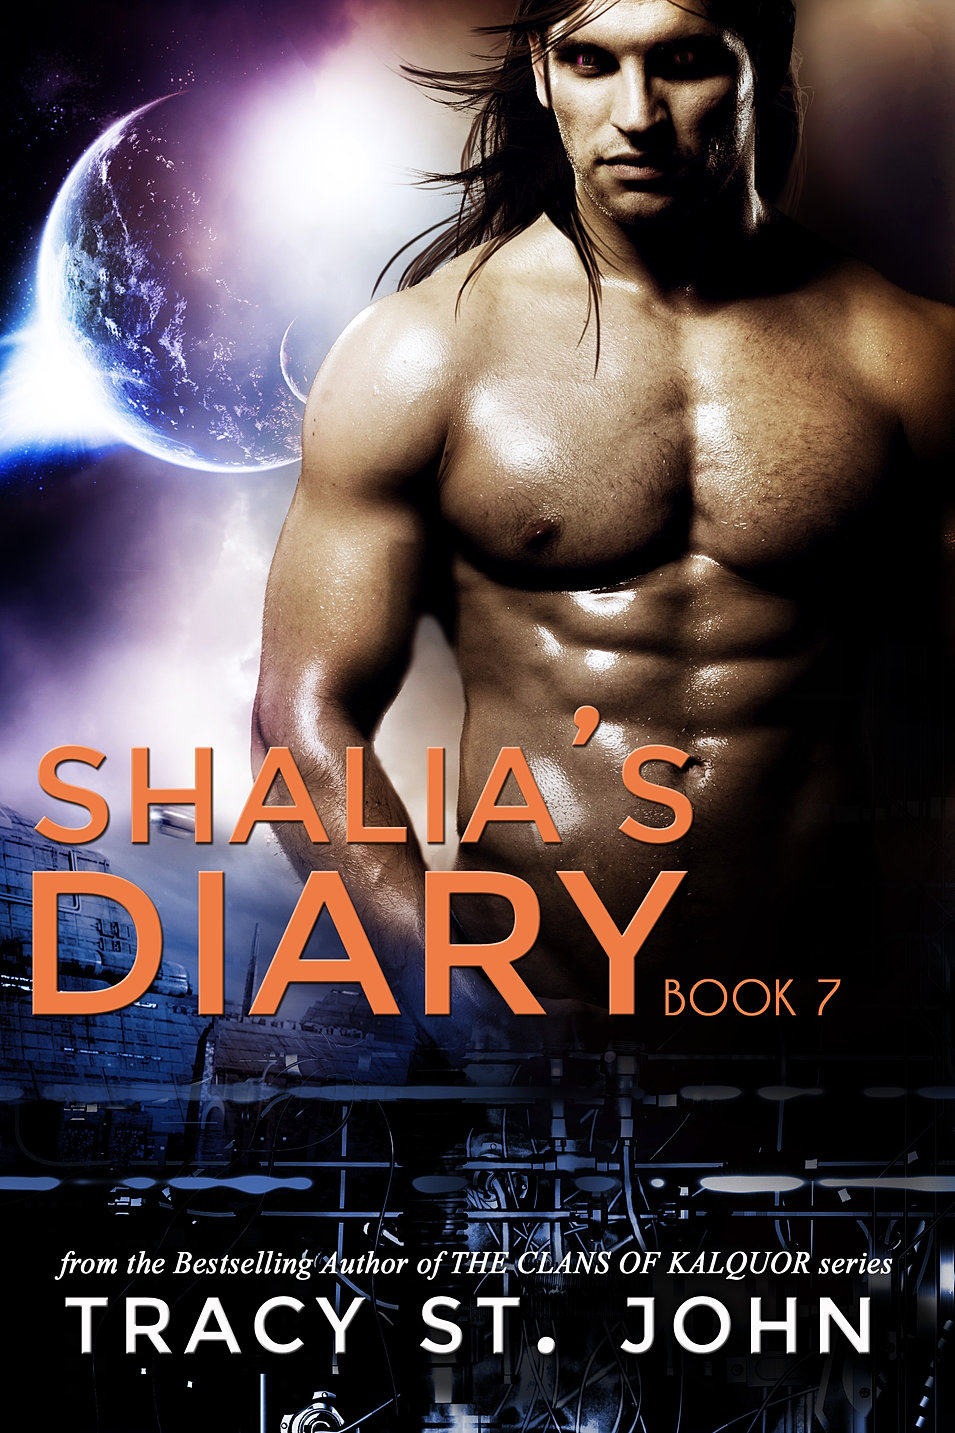 Shalia'sDiaryBook7